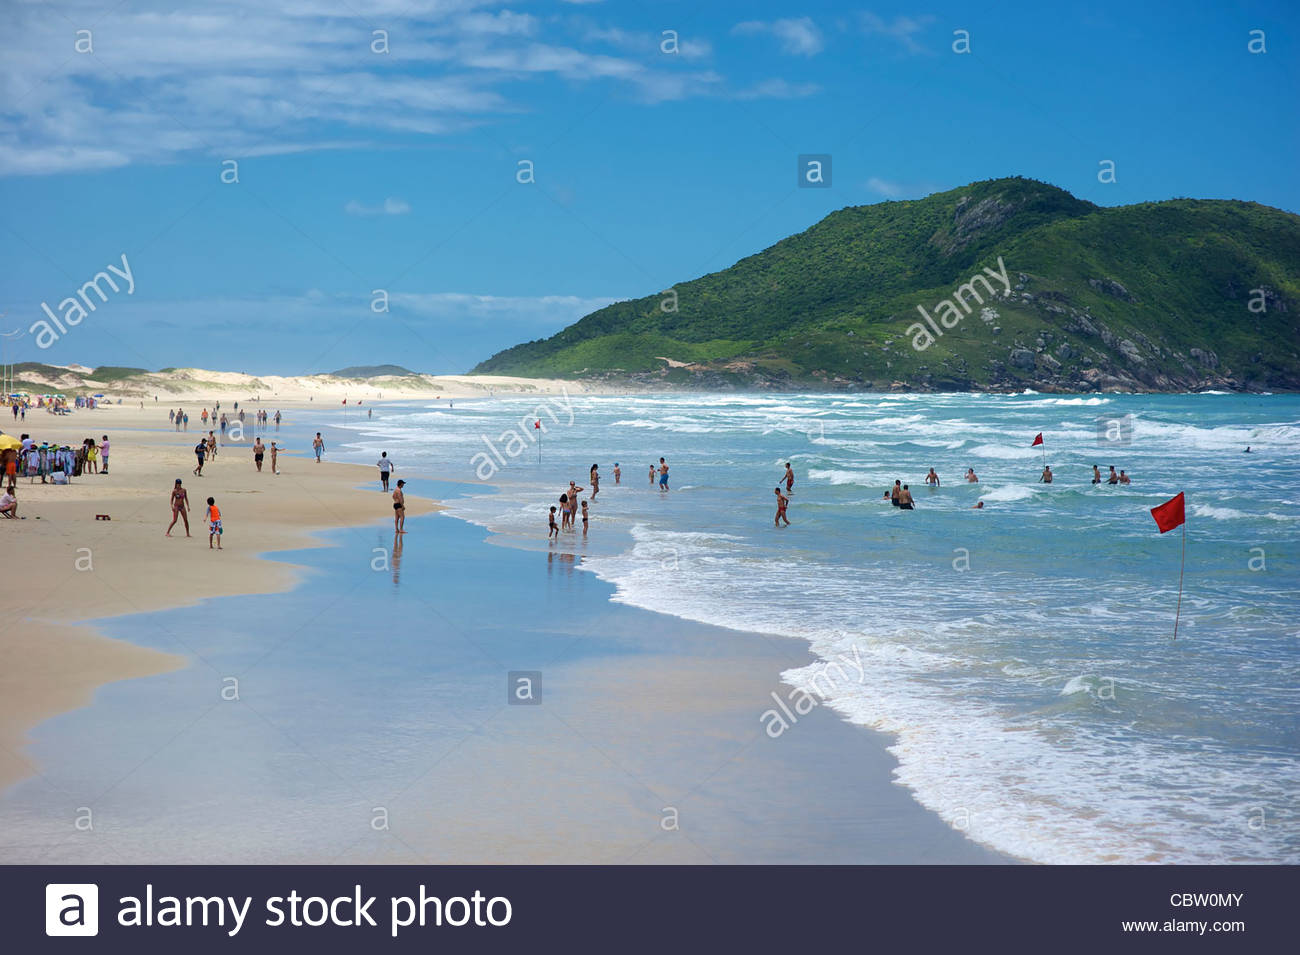 Praia do Santinho is a beach in north Florianopolis, Santa Catarina state, Brazil, located about 40 kilometres from - Stock Image